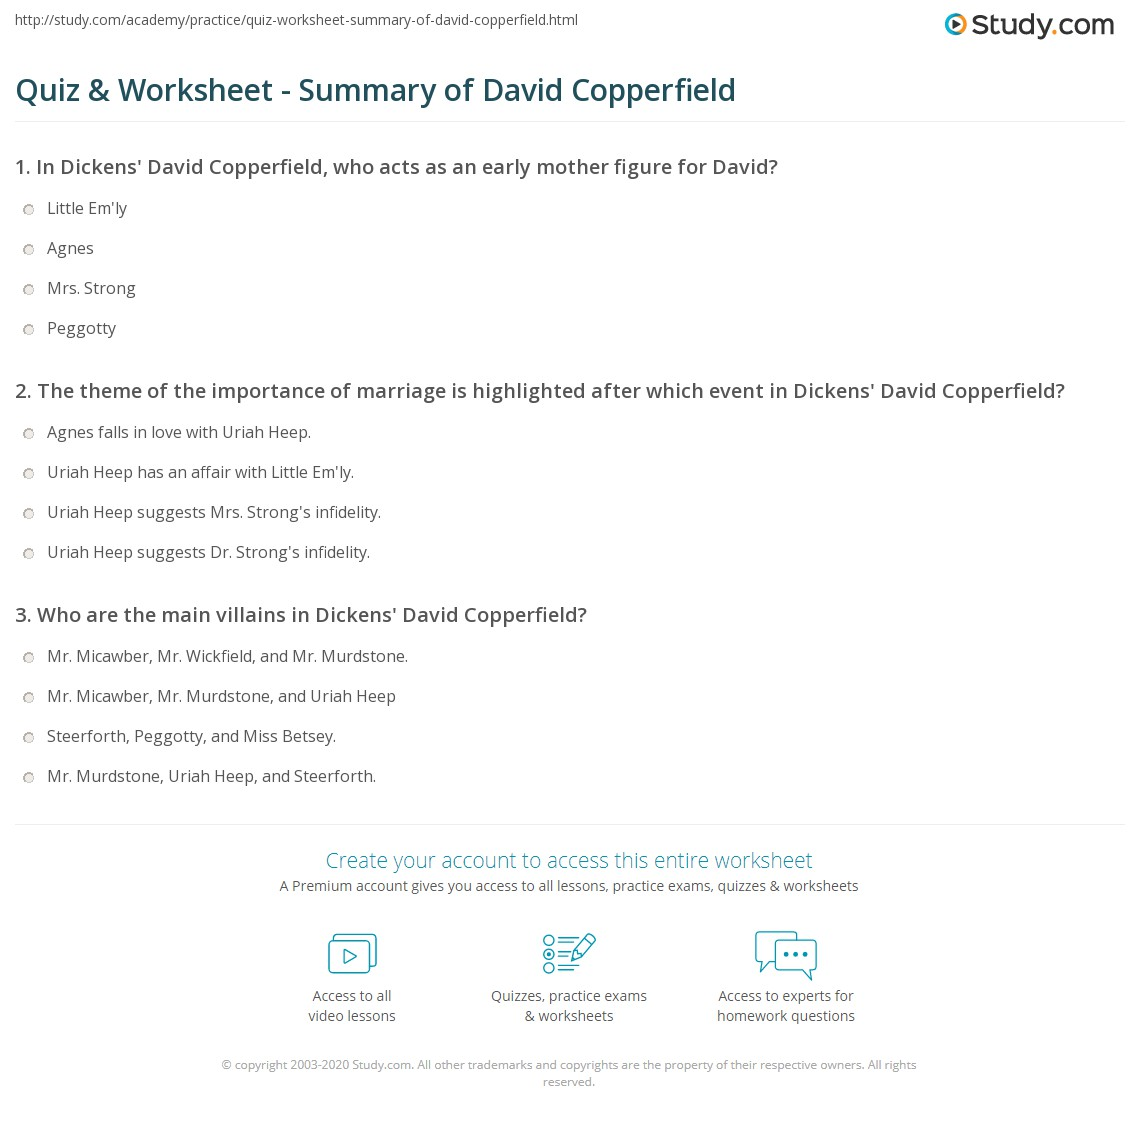 quiz worksheet summary of david copperfield com print david copperfield dickens bildungsr worksheet